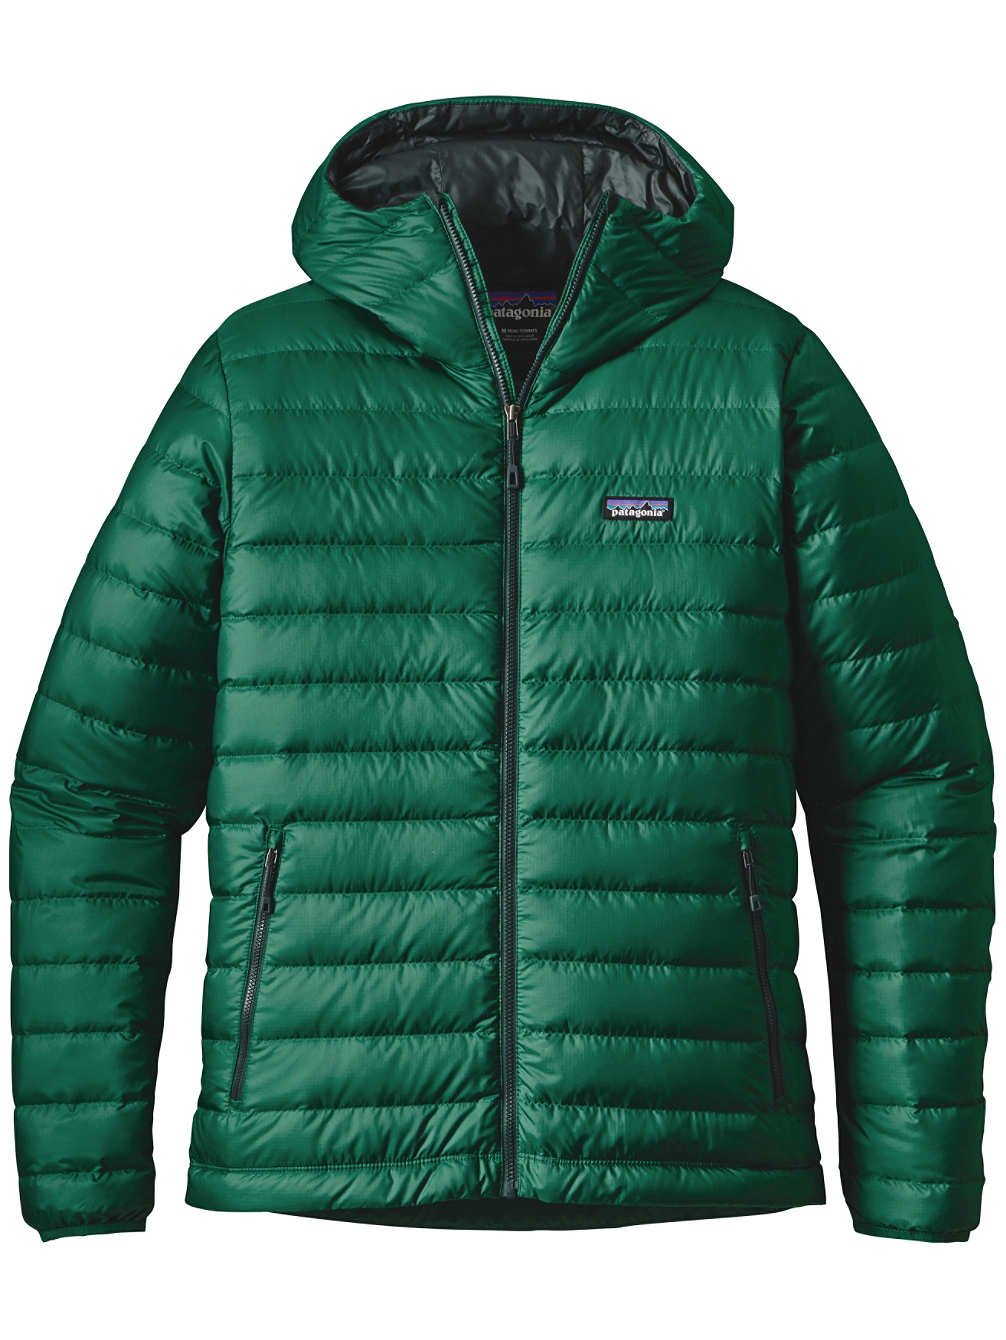 patagonia(パタゴニア) M's Down Sweater Hoody メンズダウンセーターフーディ 84701 B01HBORNYI  Legend Green X-Large